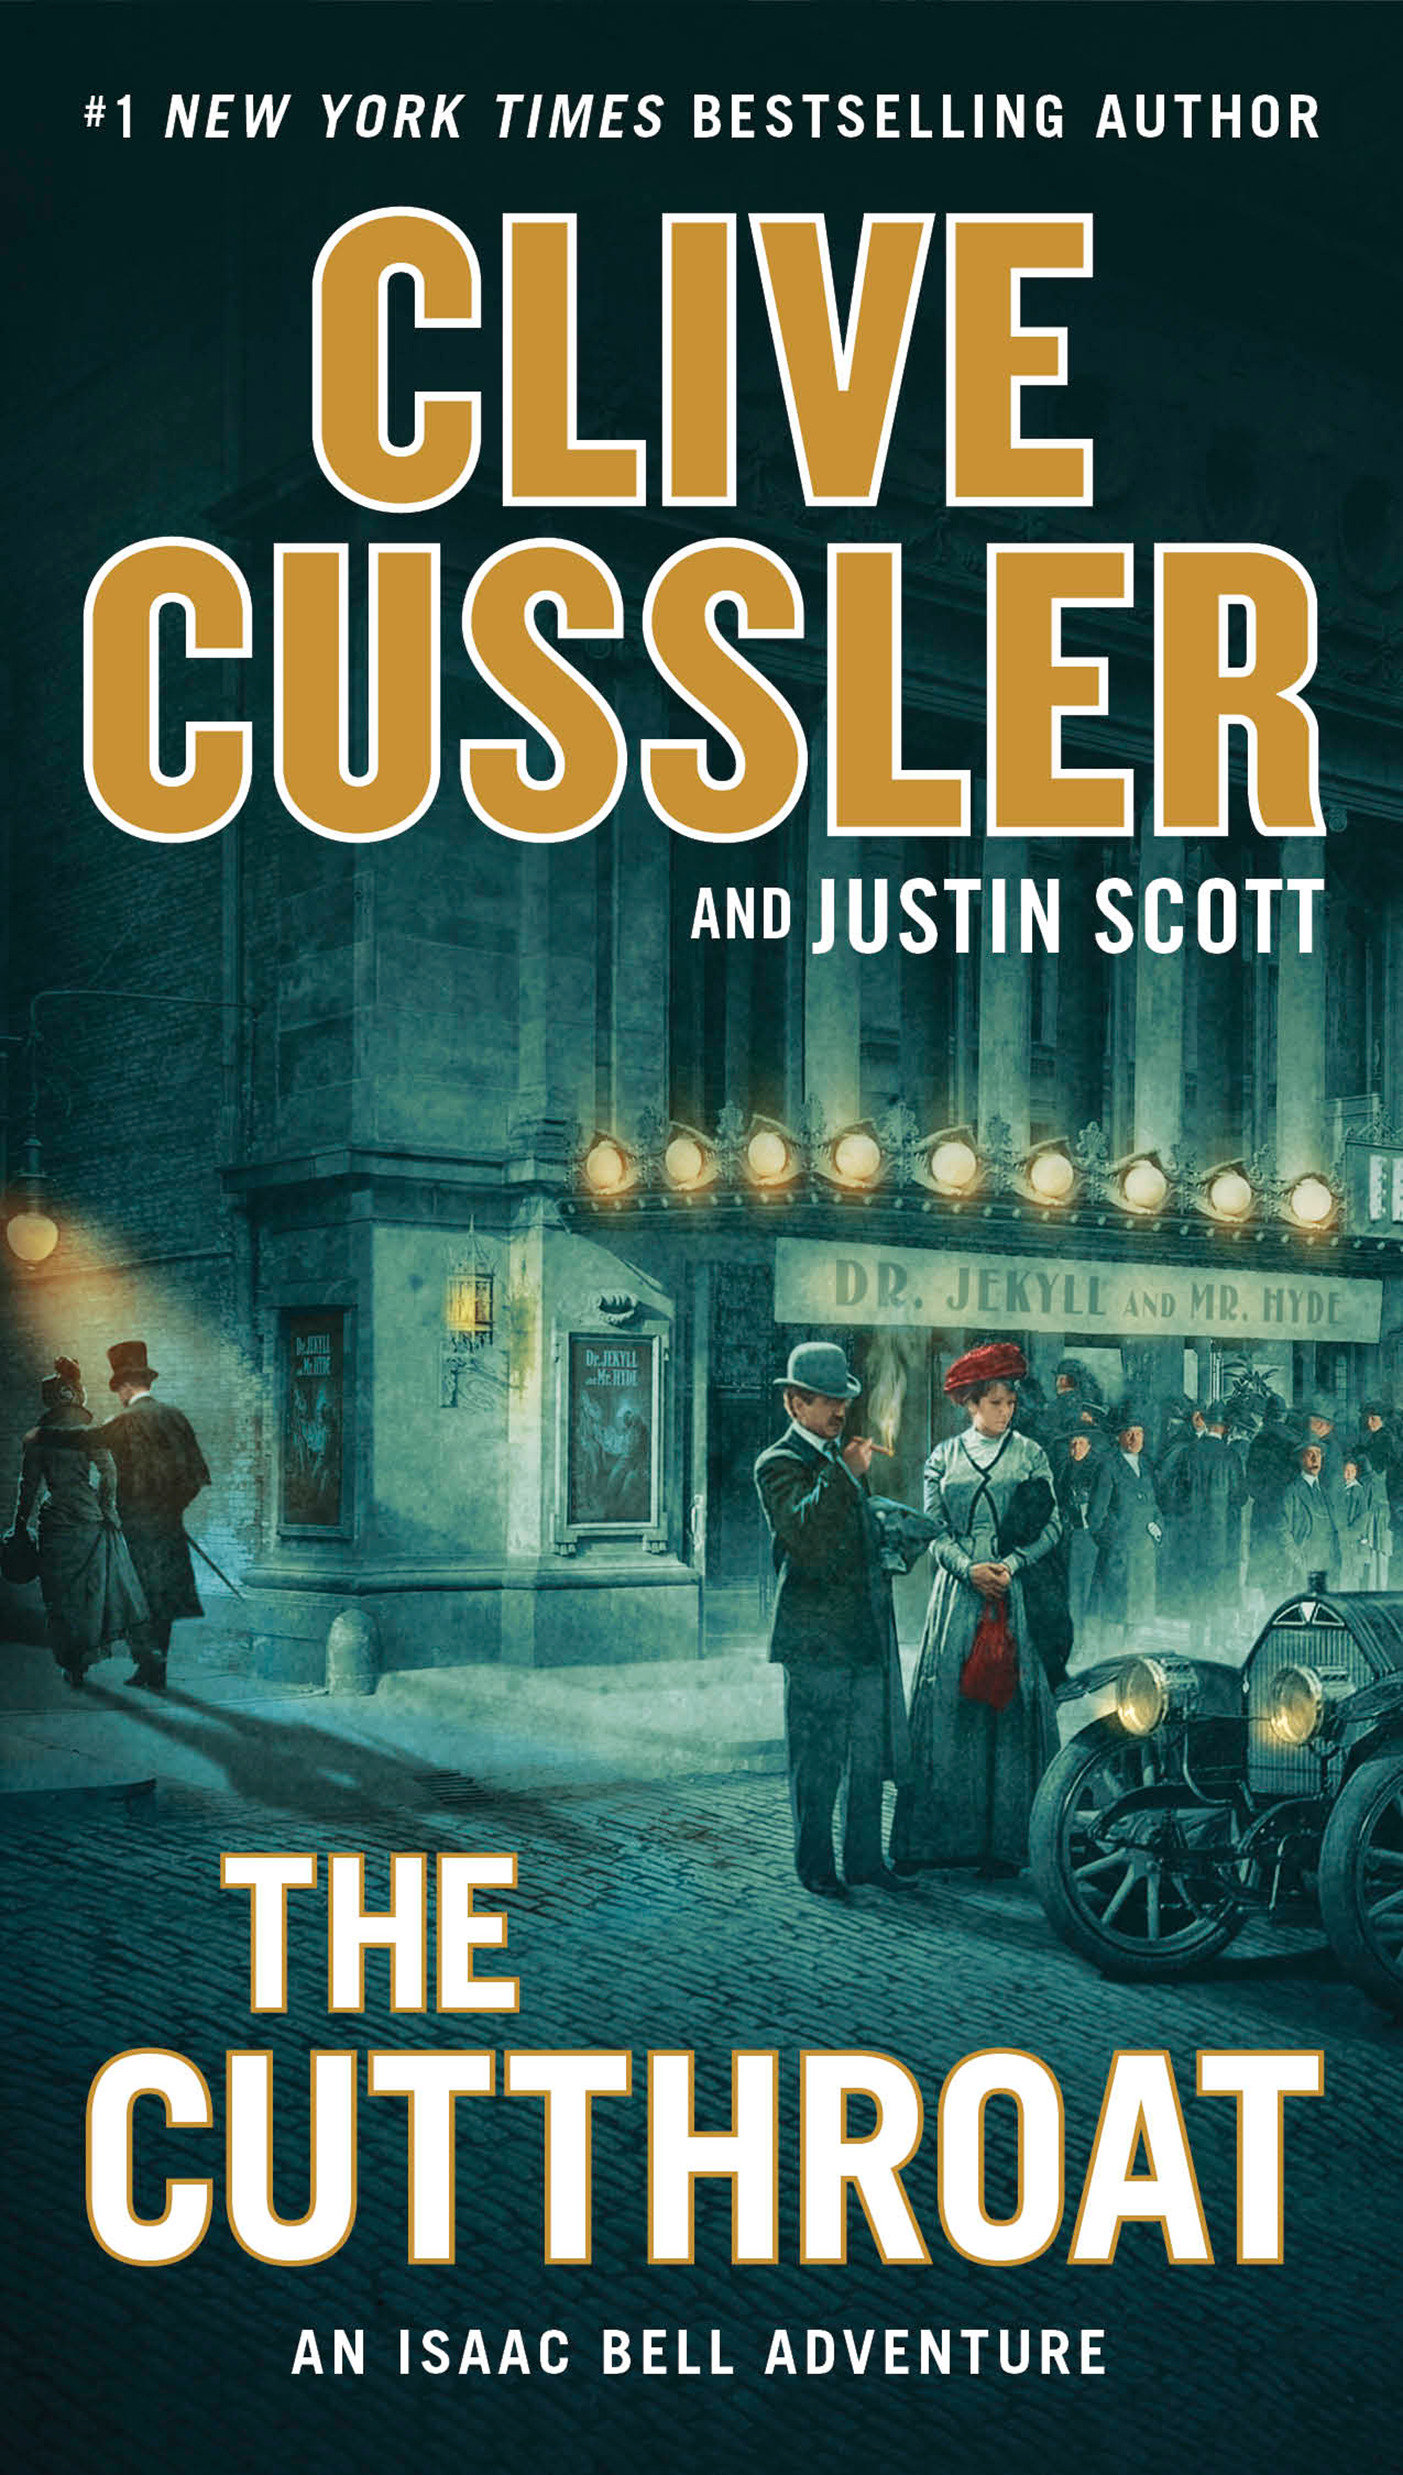 The cutthroat cover image